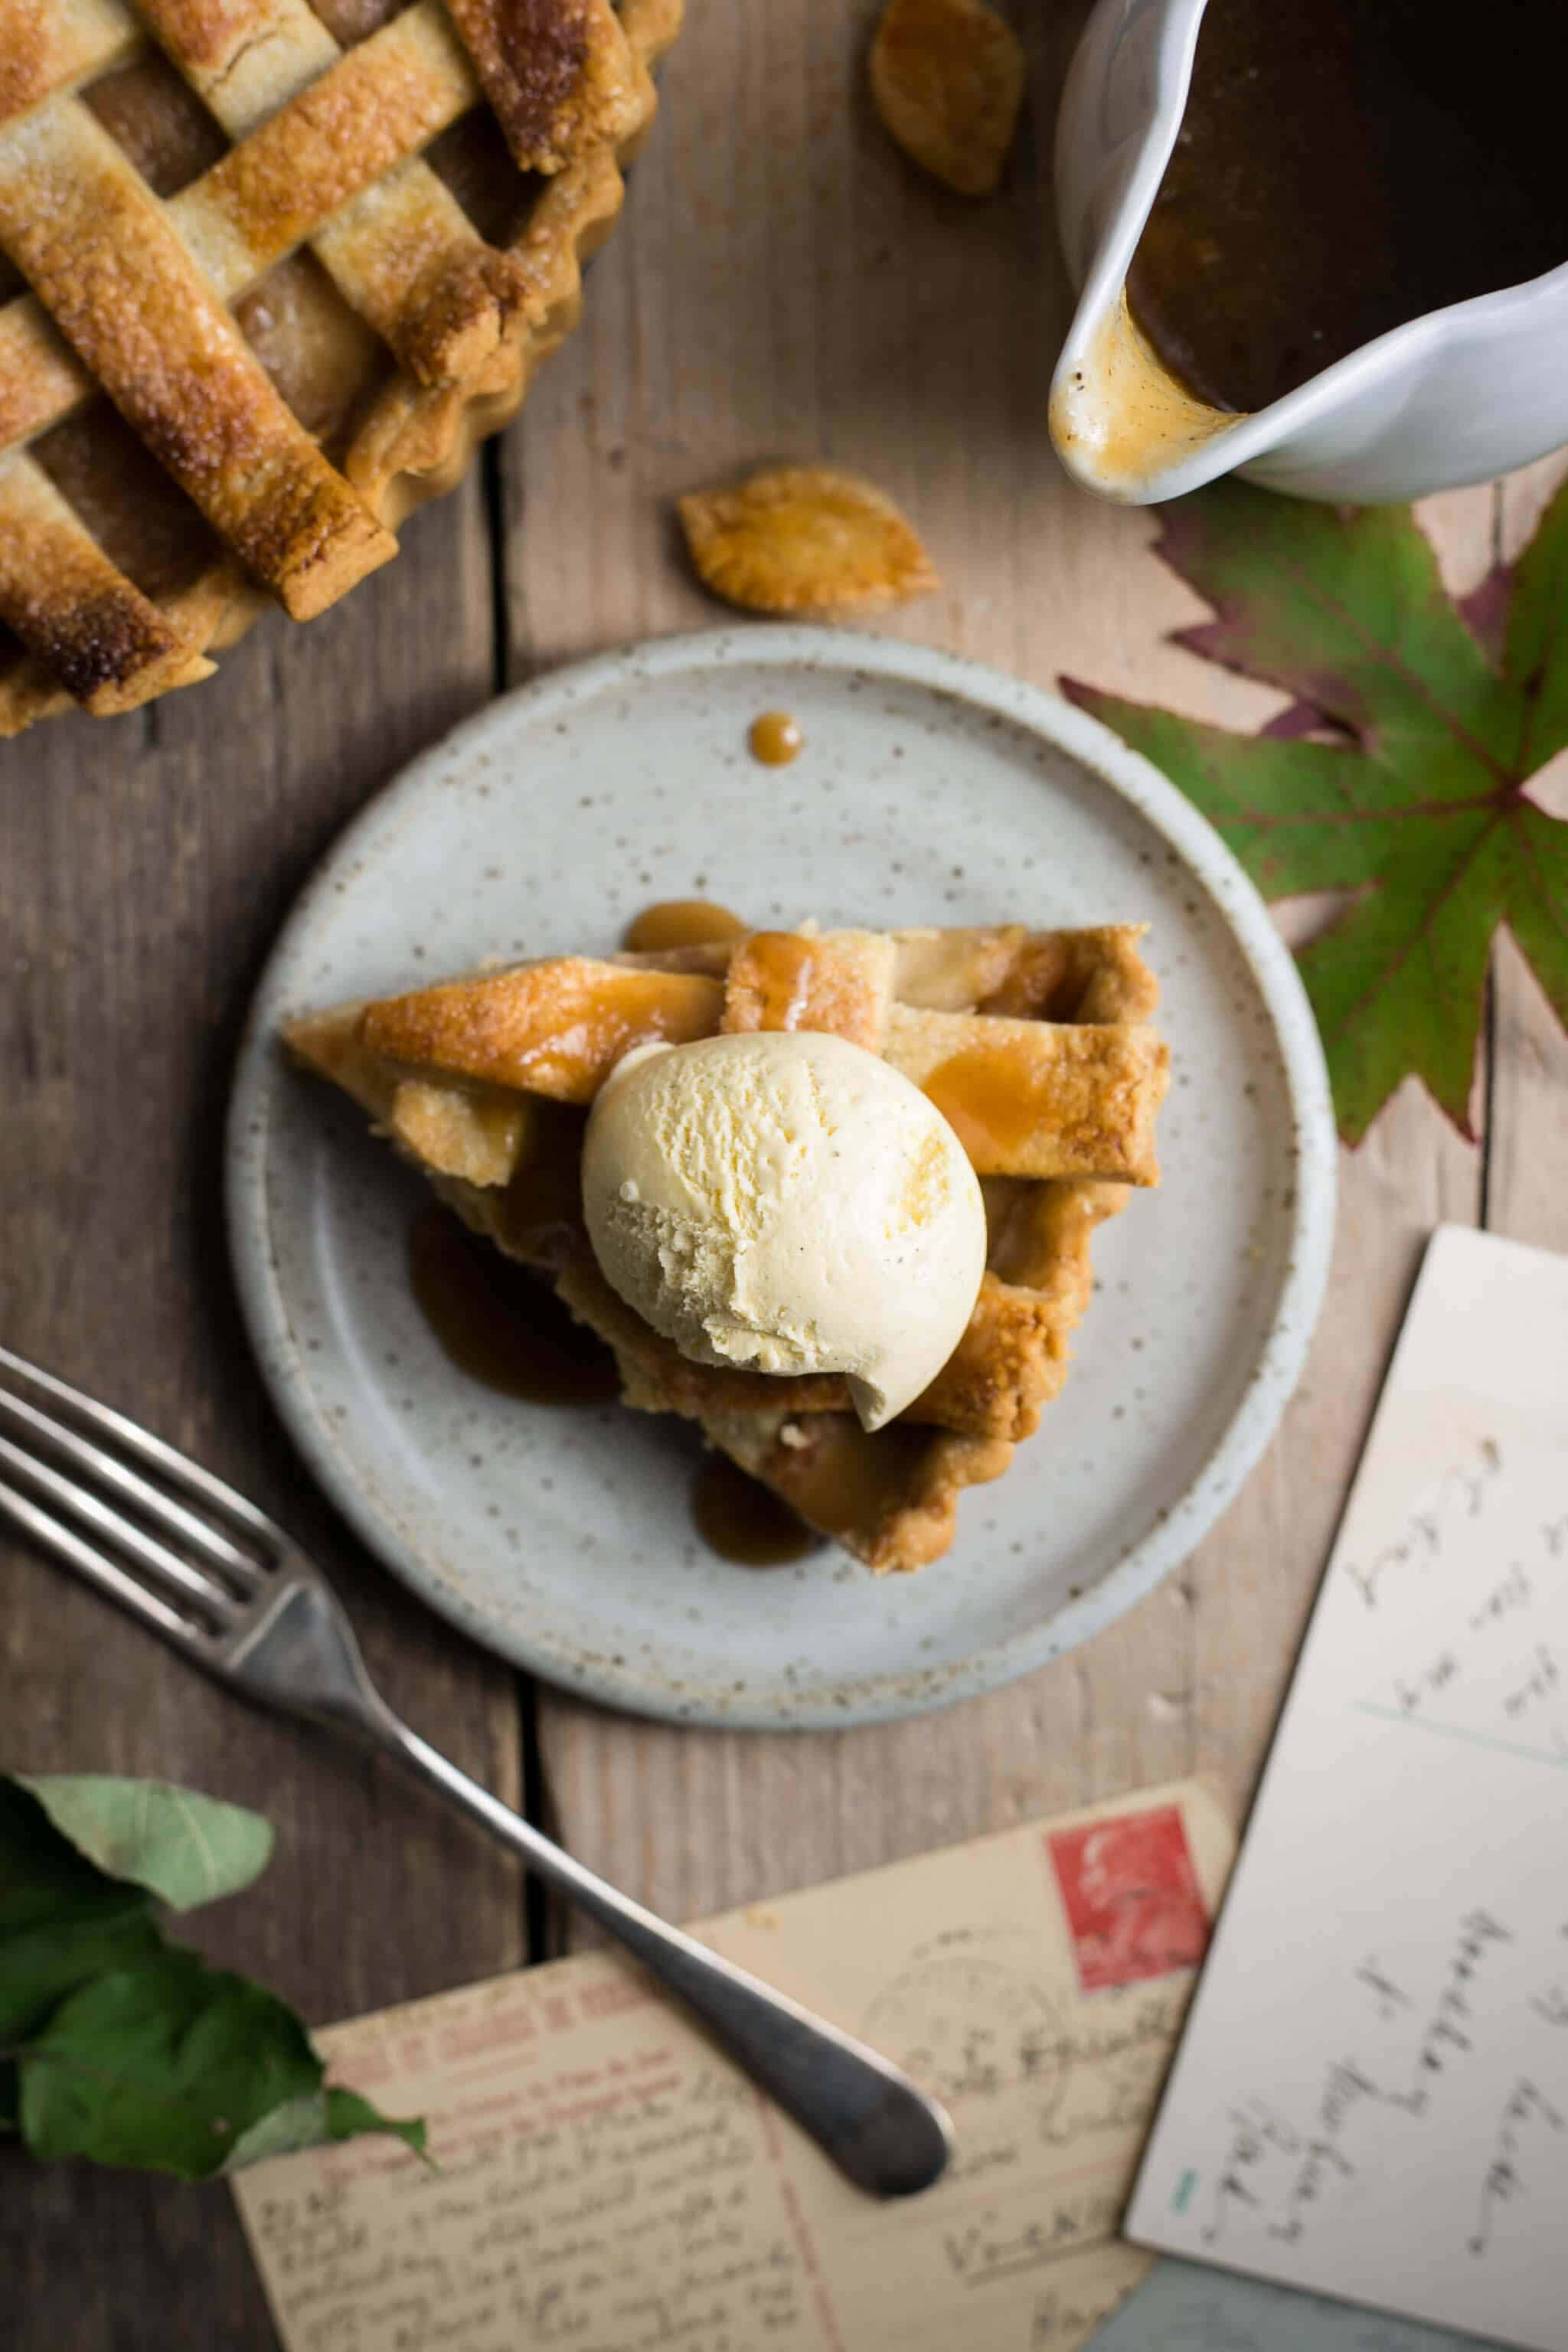 Apple pie with caramel. Easy recipe for delicious #vegan dessert | via @annabanana.co